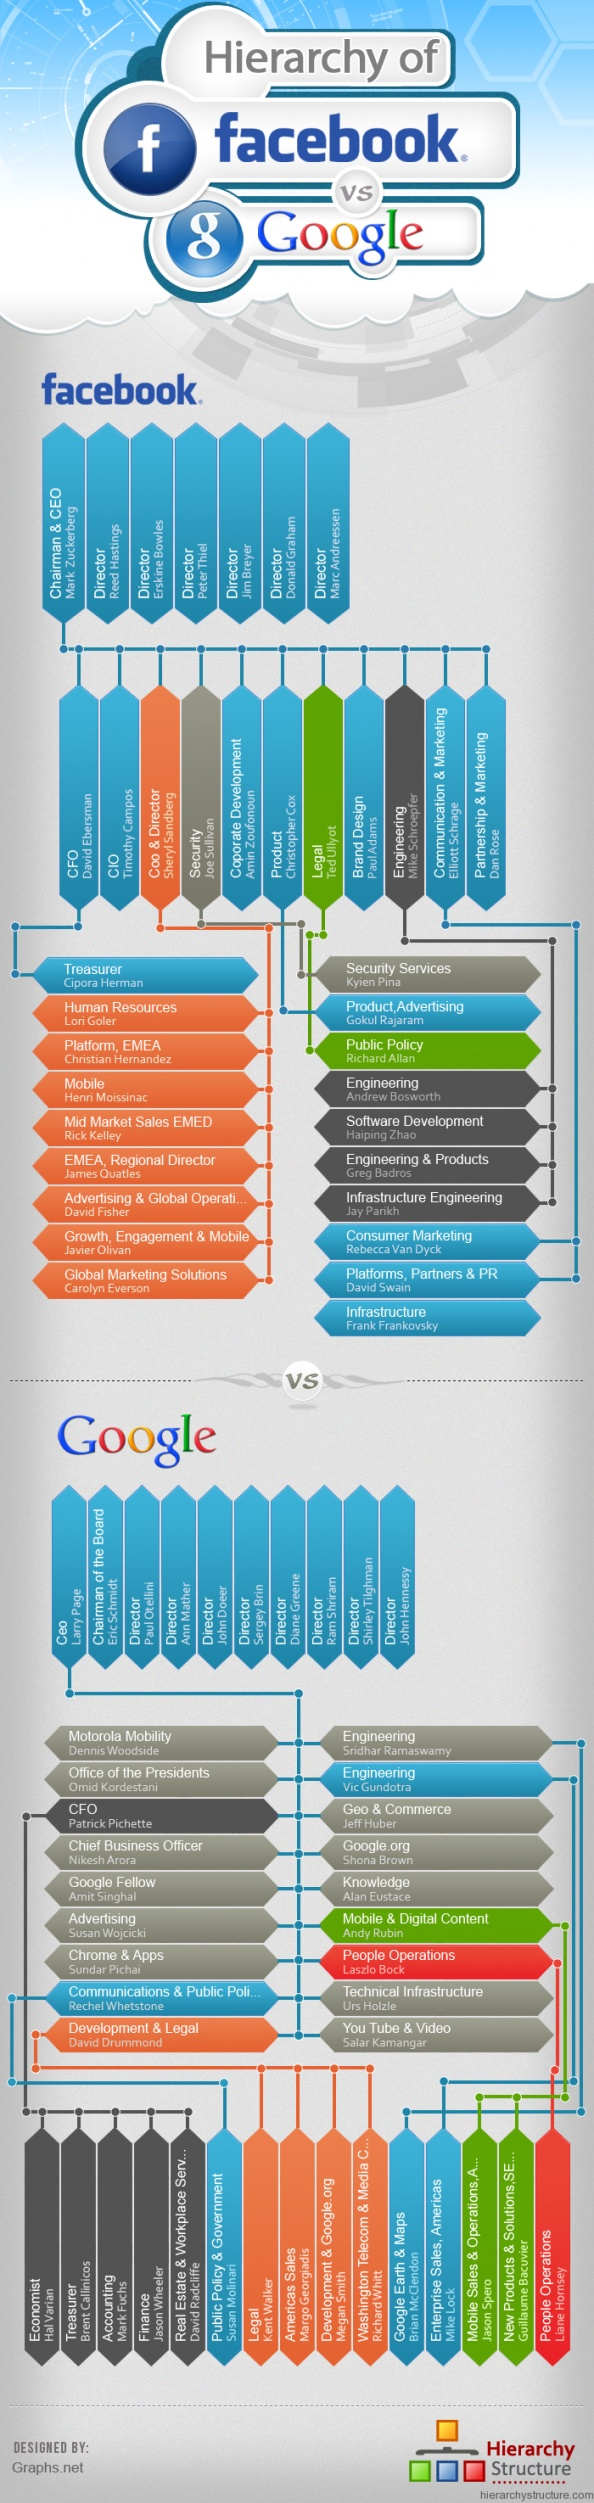 Organizational hierarchy of Facebook vs Google infographic.  Can use this when teaching organizational structure.